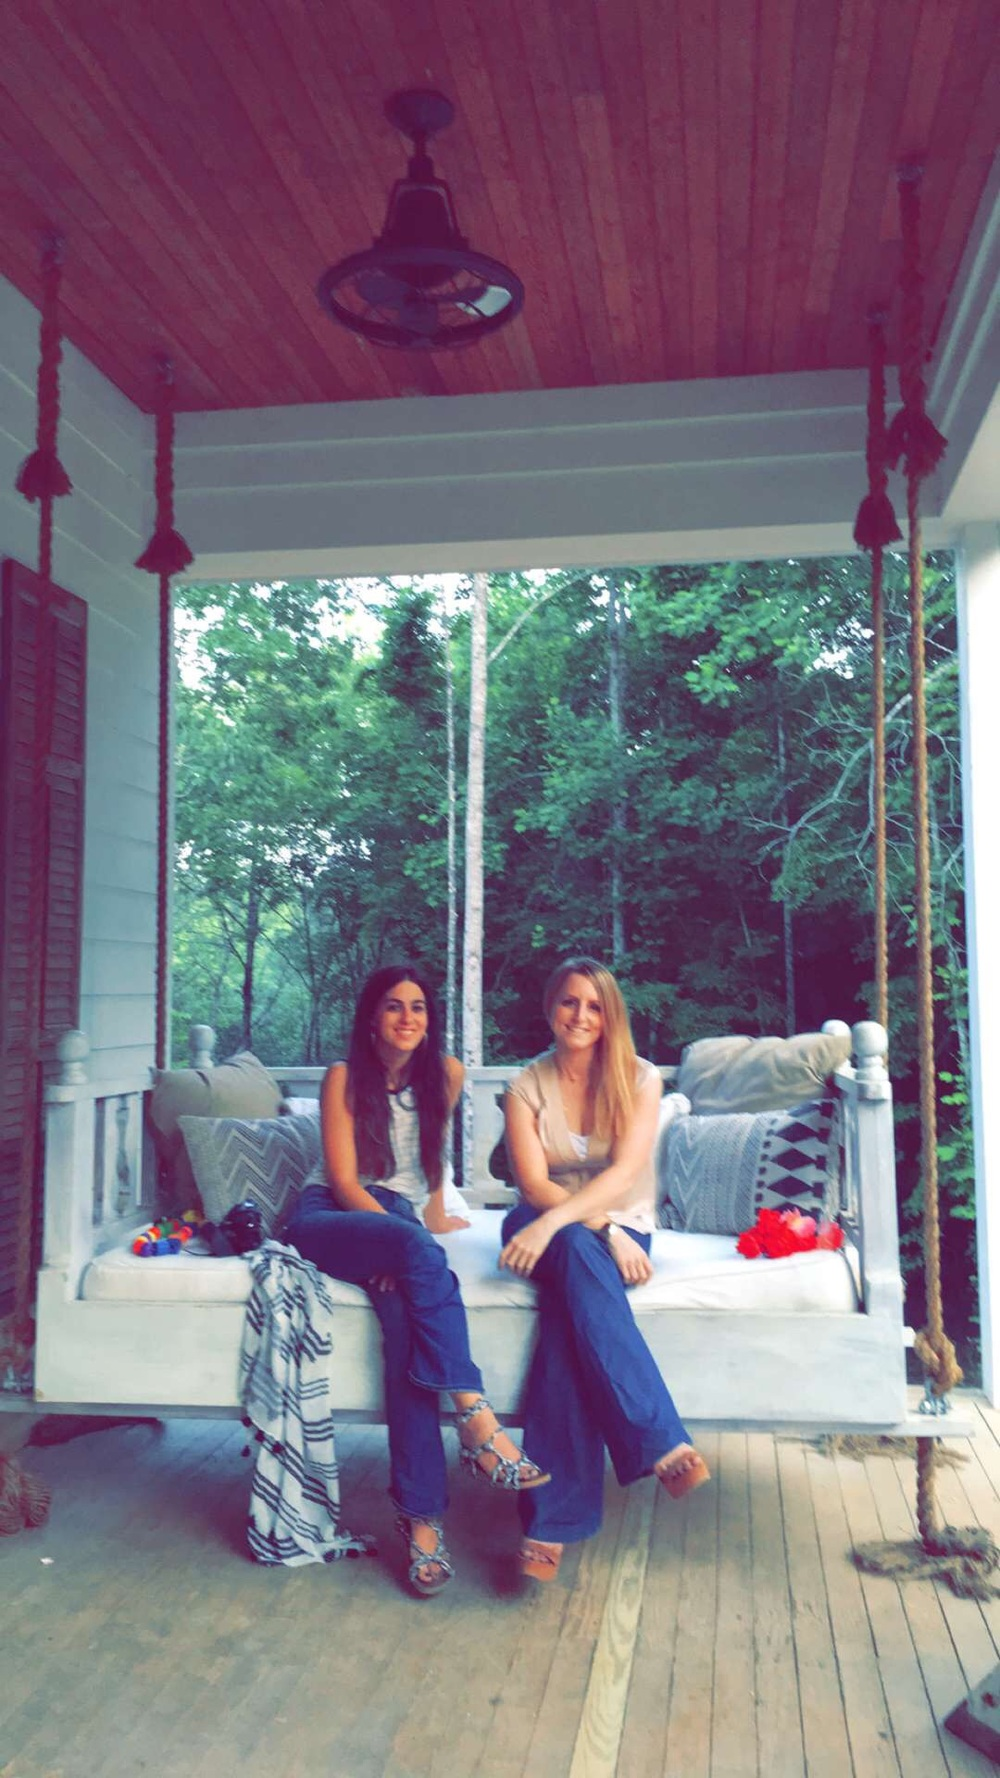 Just look at their front porch views! It's heavenly. I love her swingbed! I'm so blessed to have met such amazing people! It was honor to be around such creative souls!!